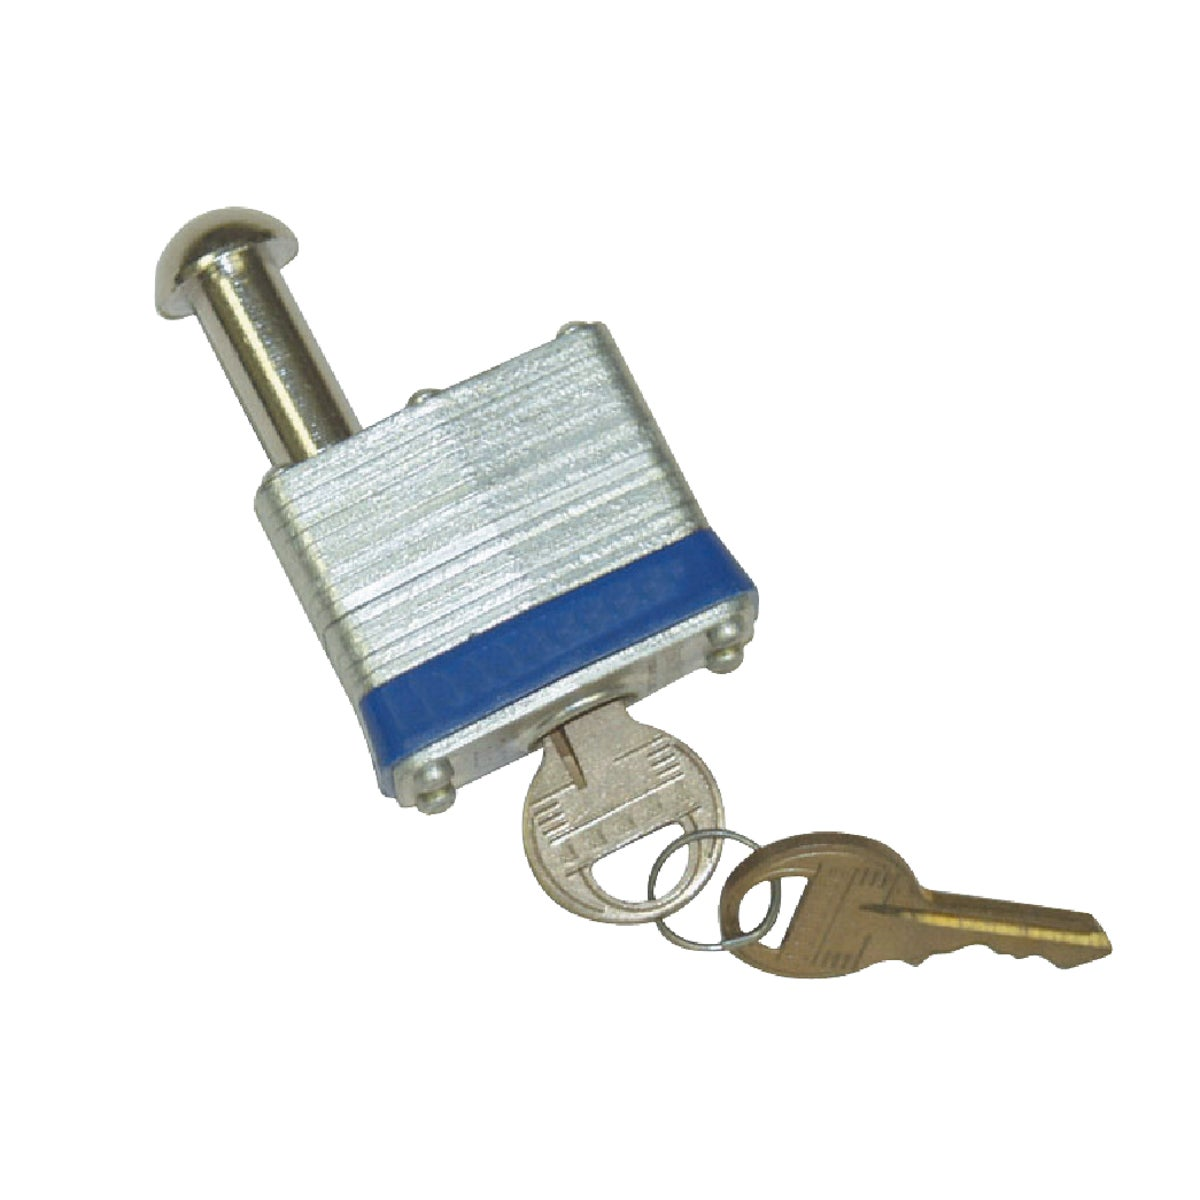 GATE PIN LOCK - FM133 by Gto Inc